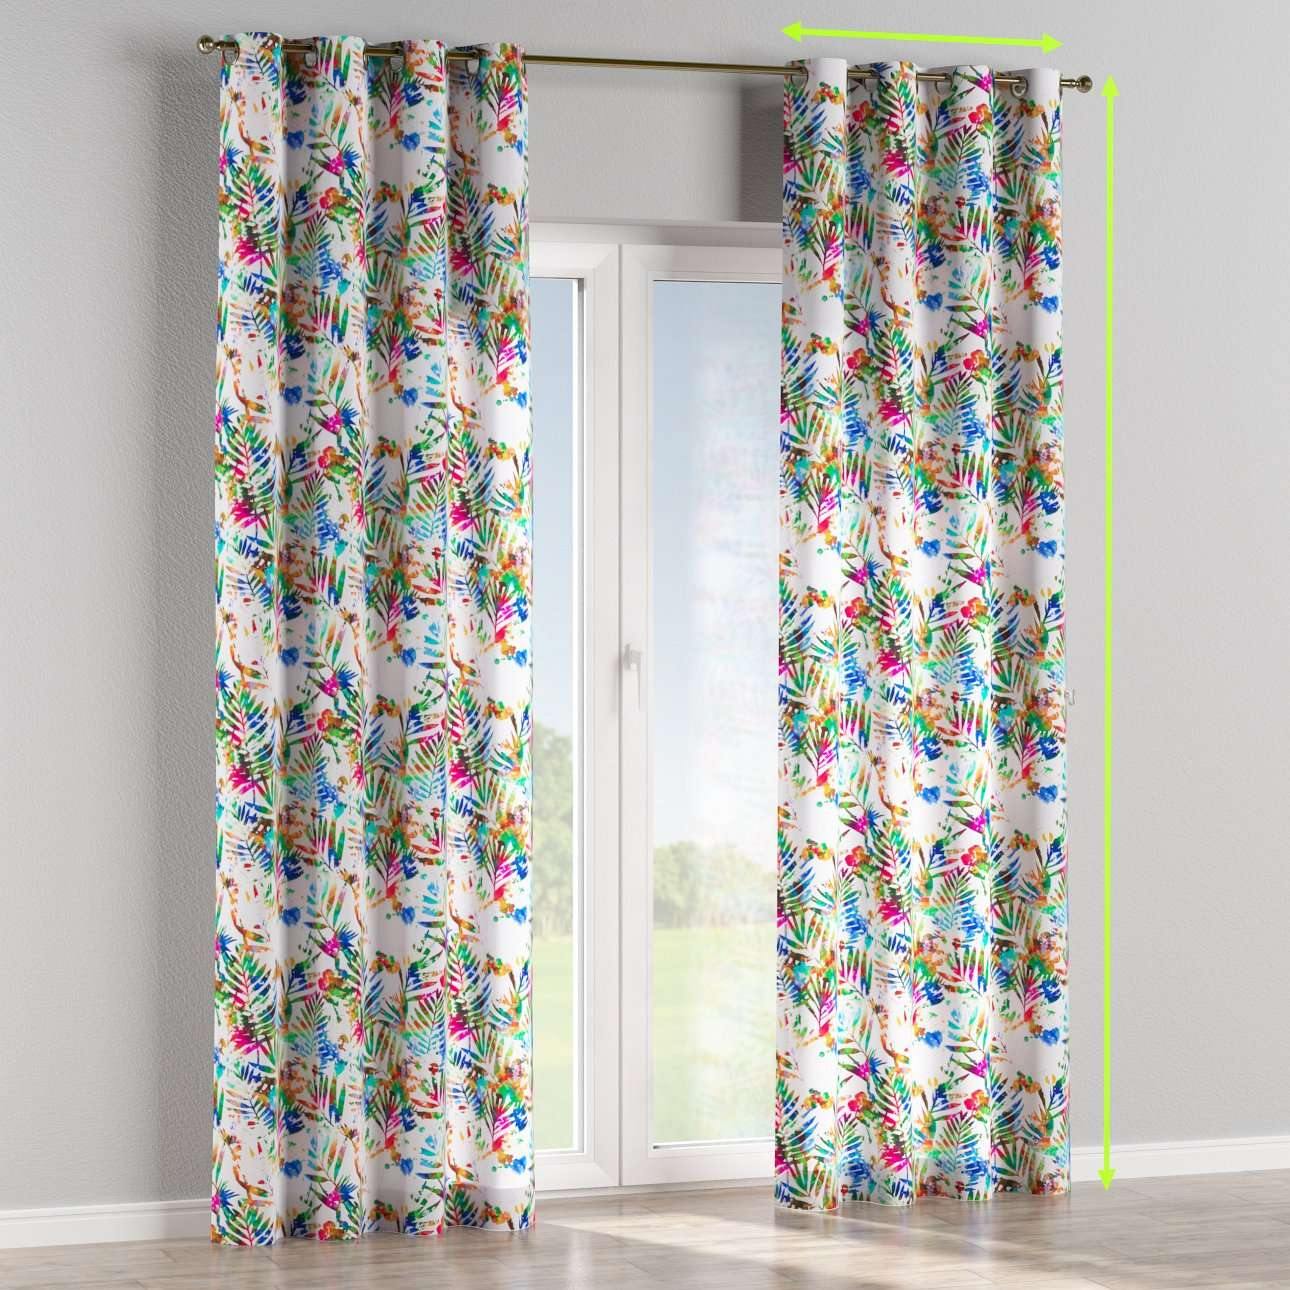 Eyelet lined curtains in collection New Art, fabric: 140-22